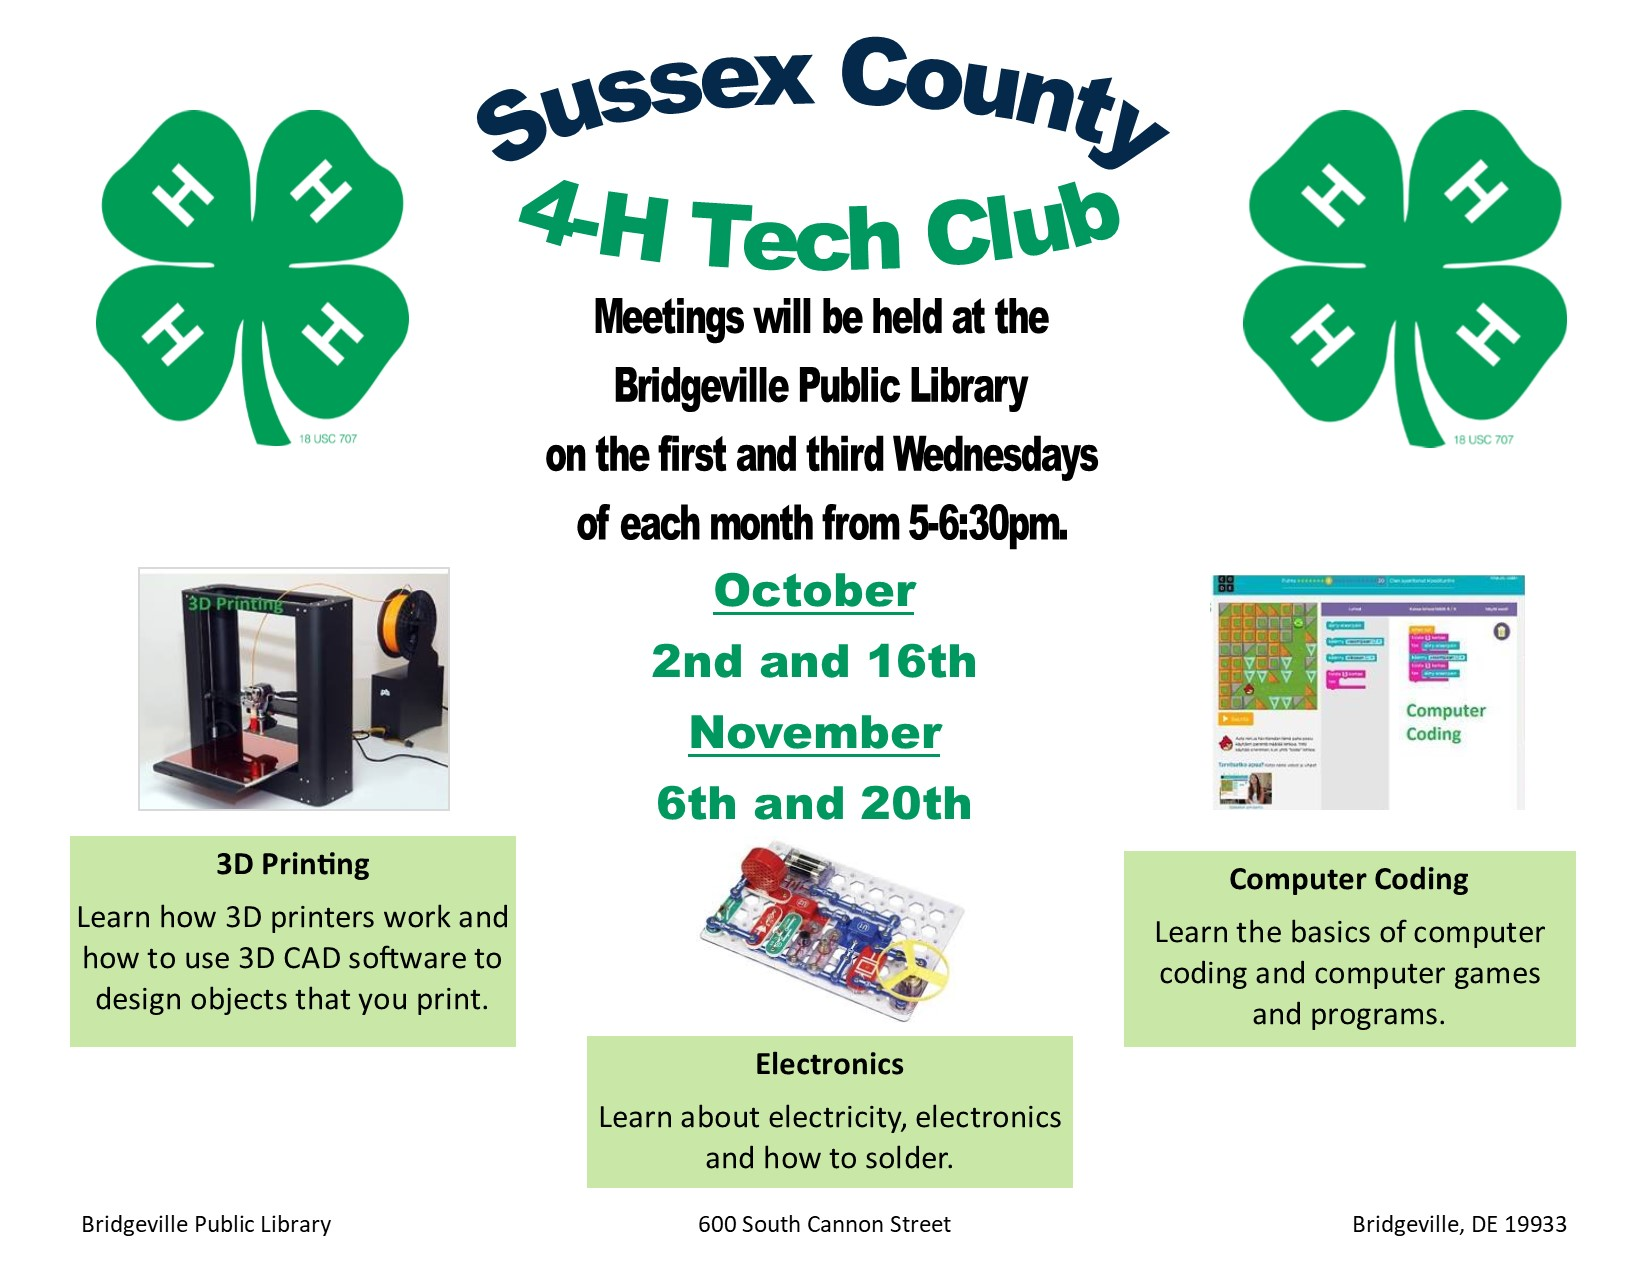 Sussex County 4-H Tech Club